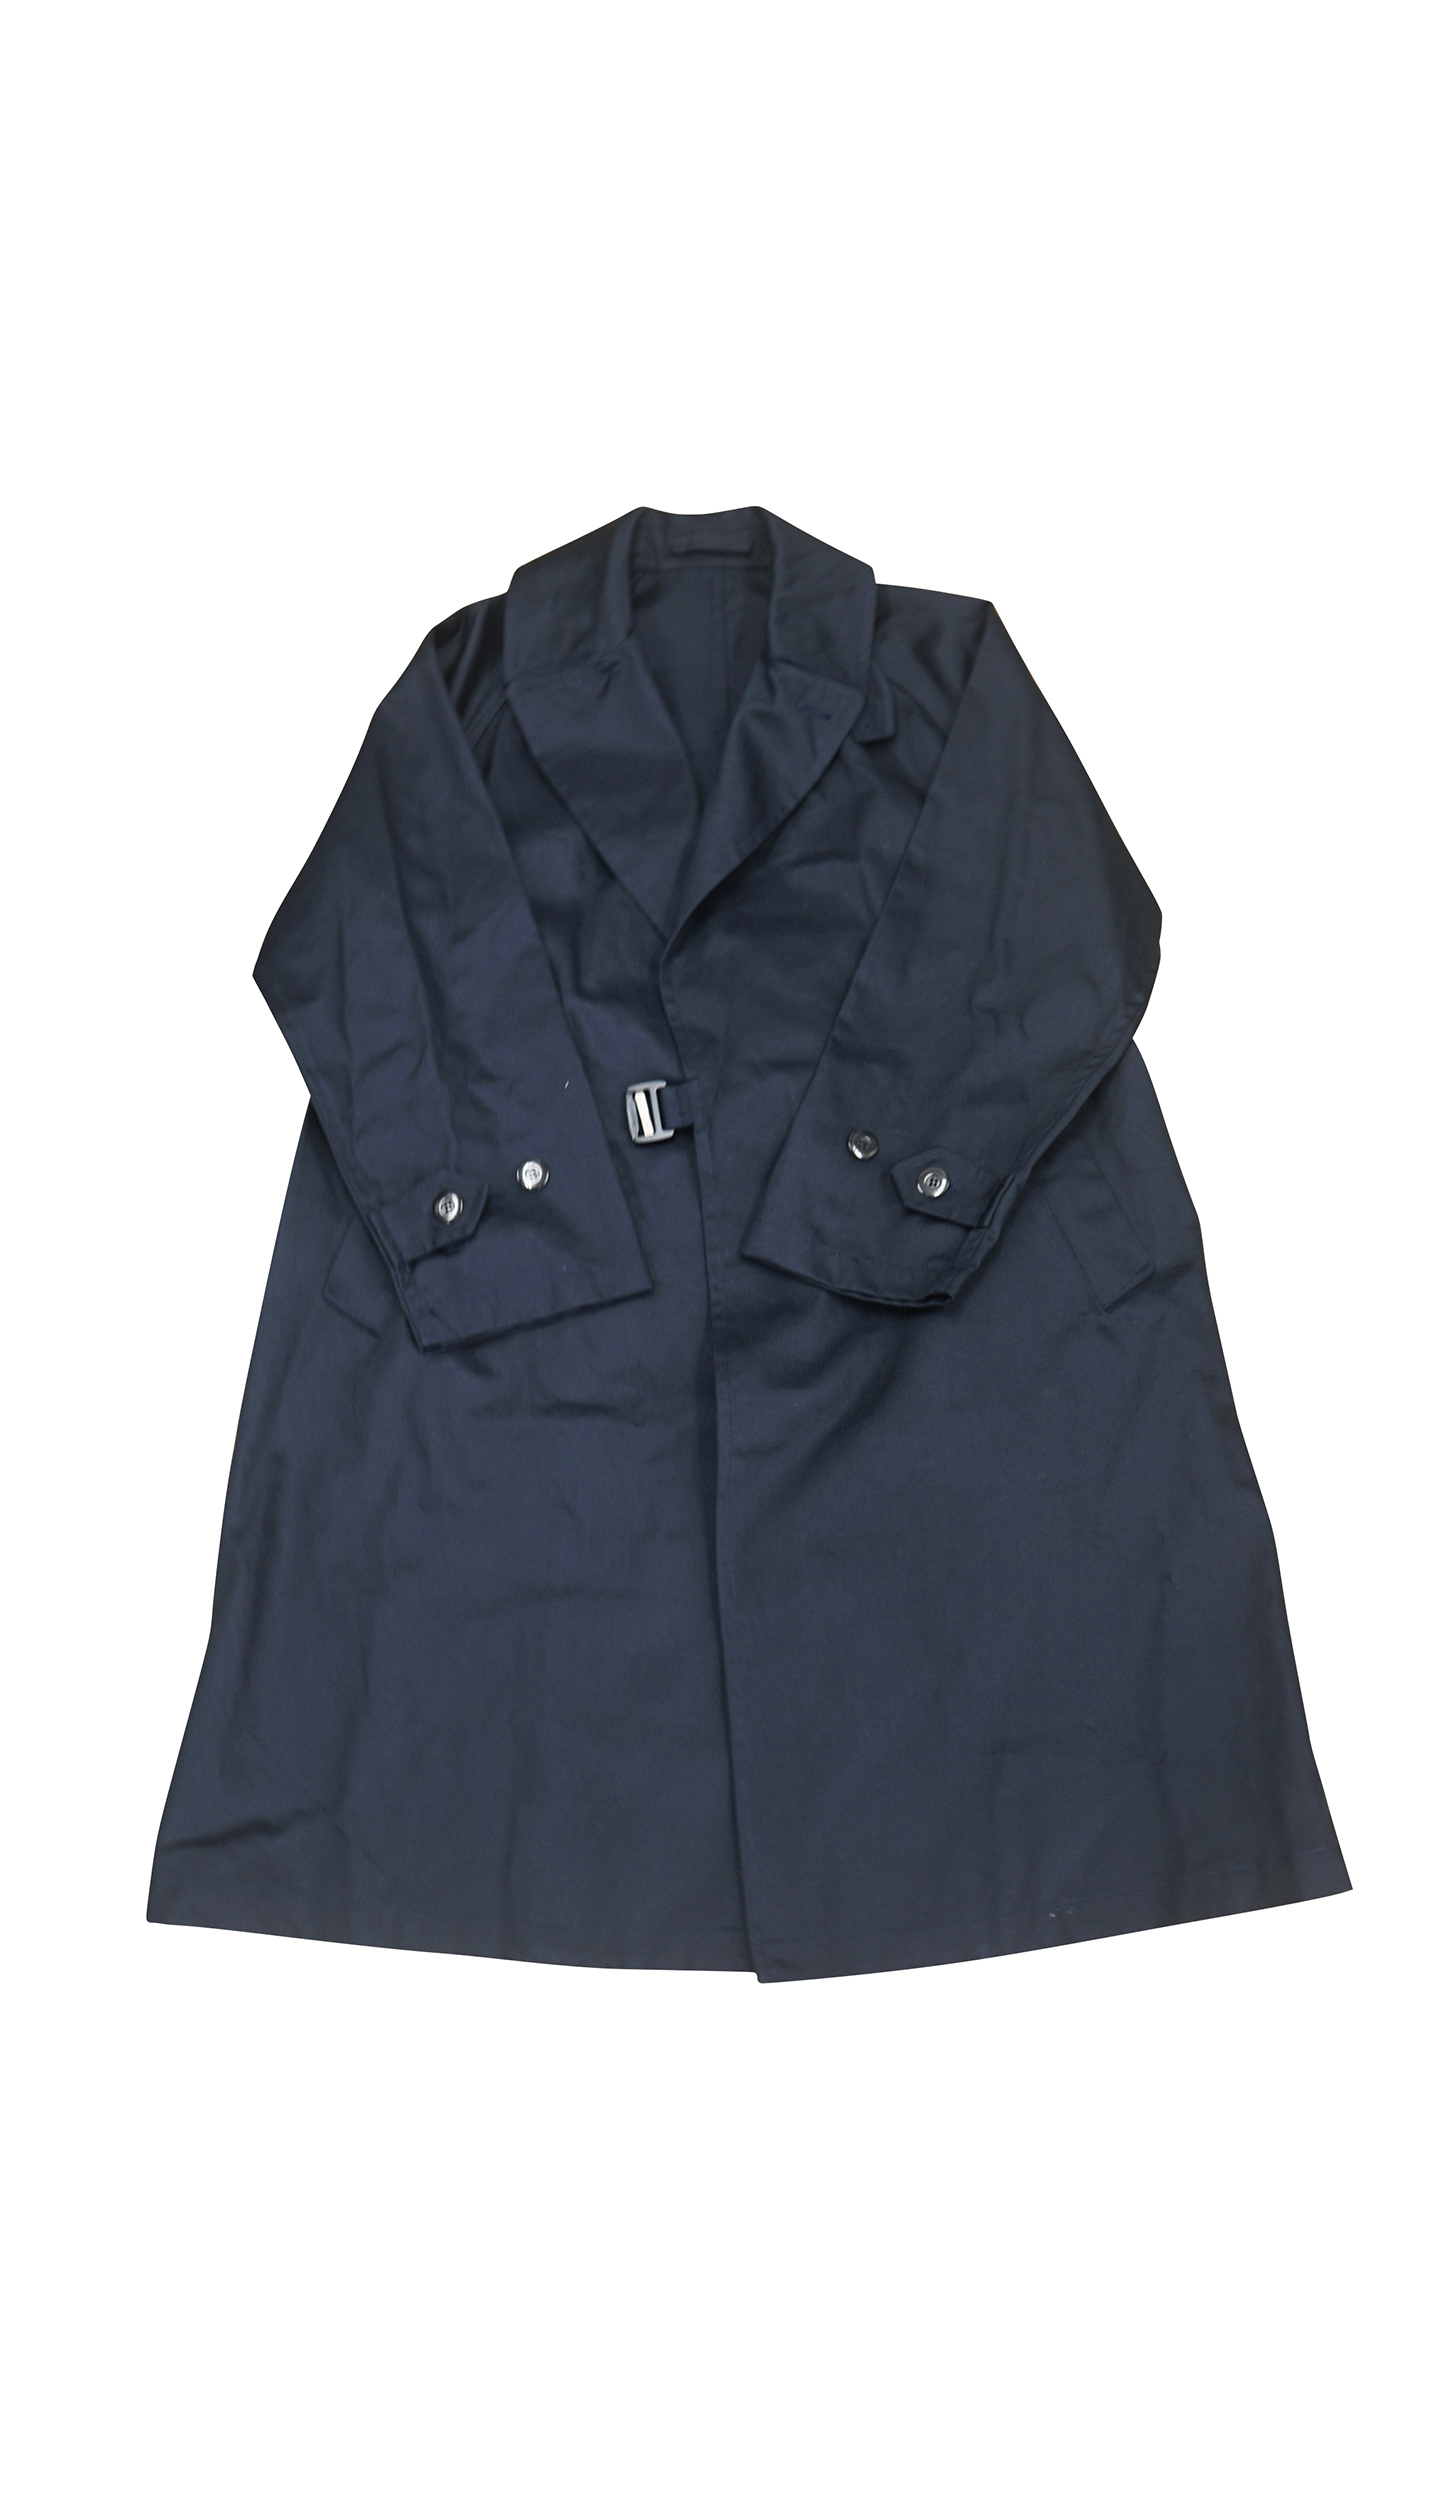 TIELOCKEN COAT (NAVY)